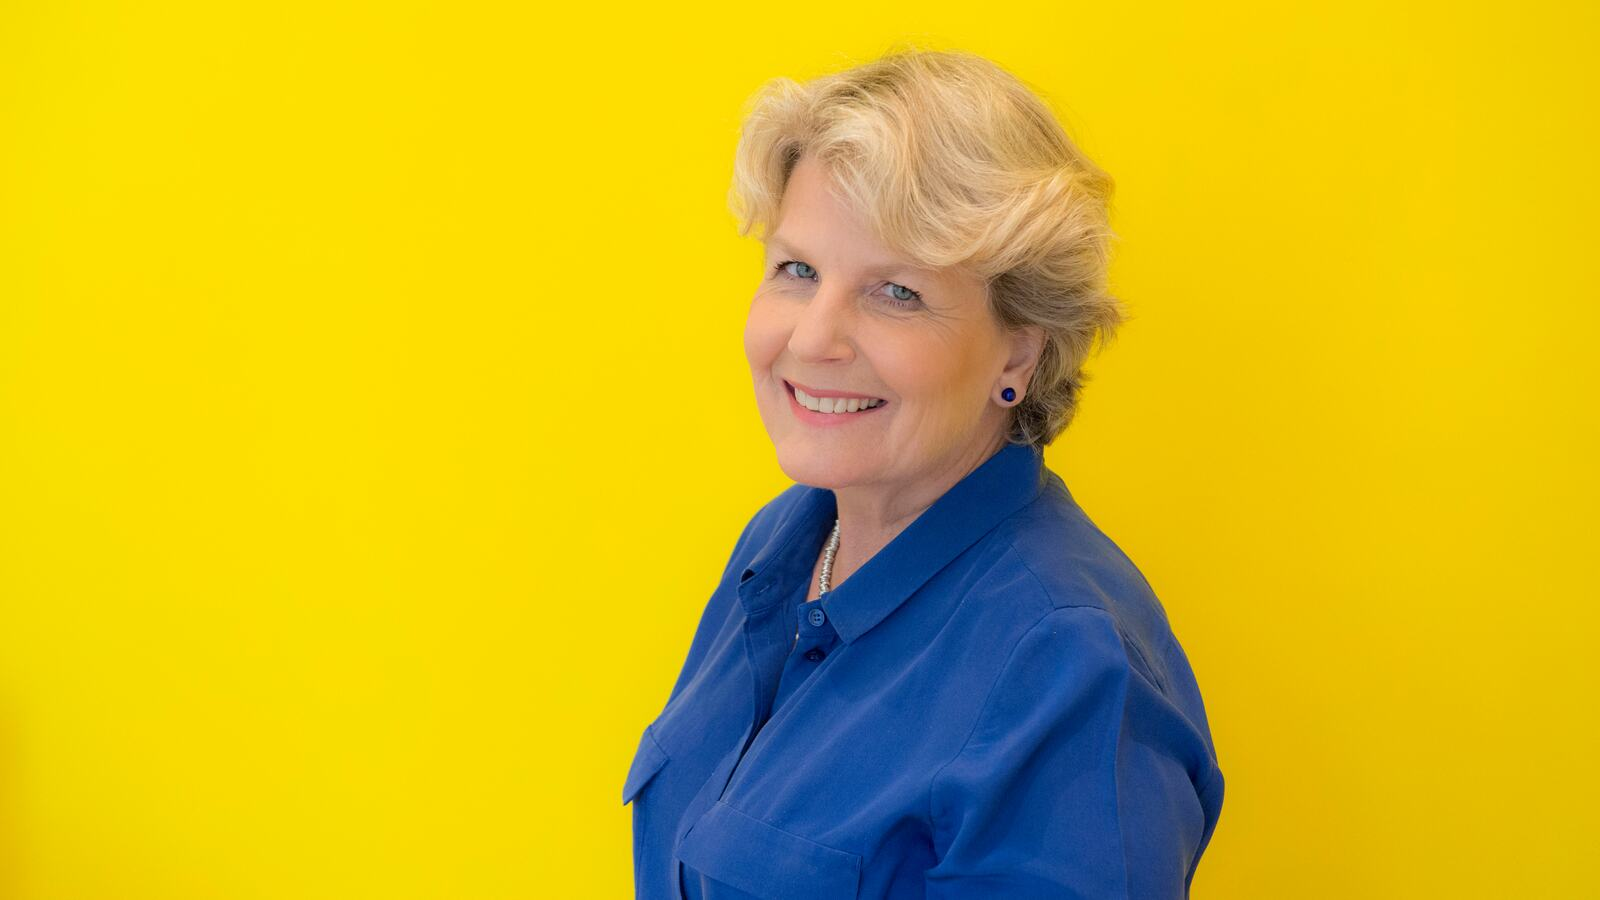 Sandi Toksvig, writer and broadcaster